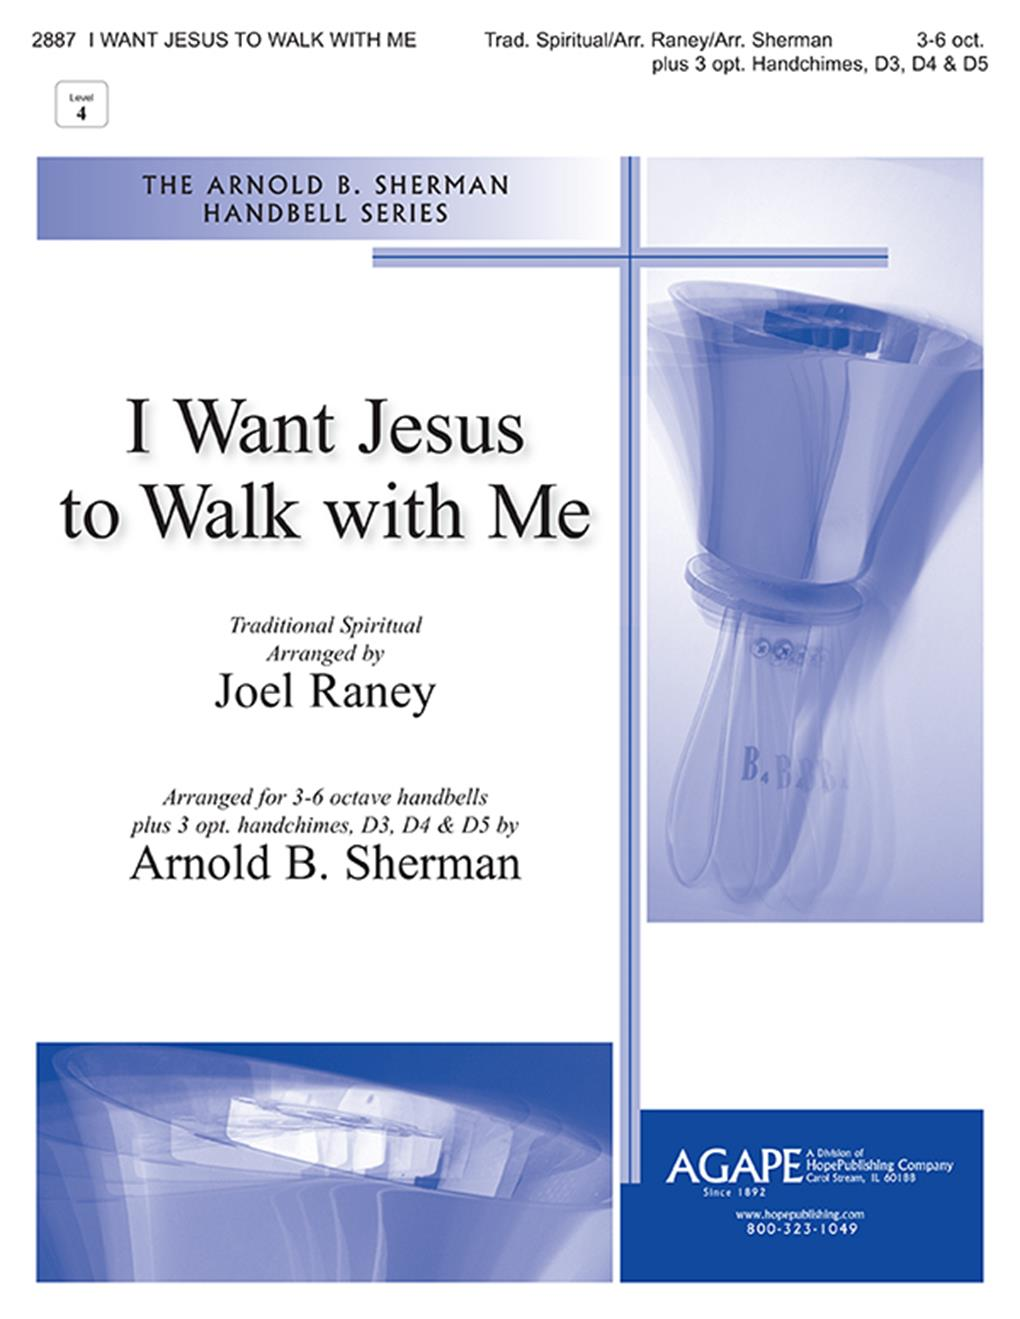 I Want Jesus to Walk with Me - 3-6 Oct. Cover Image